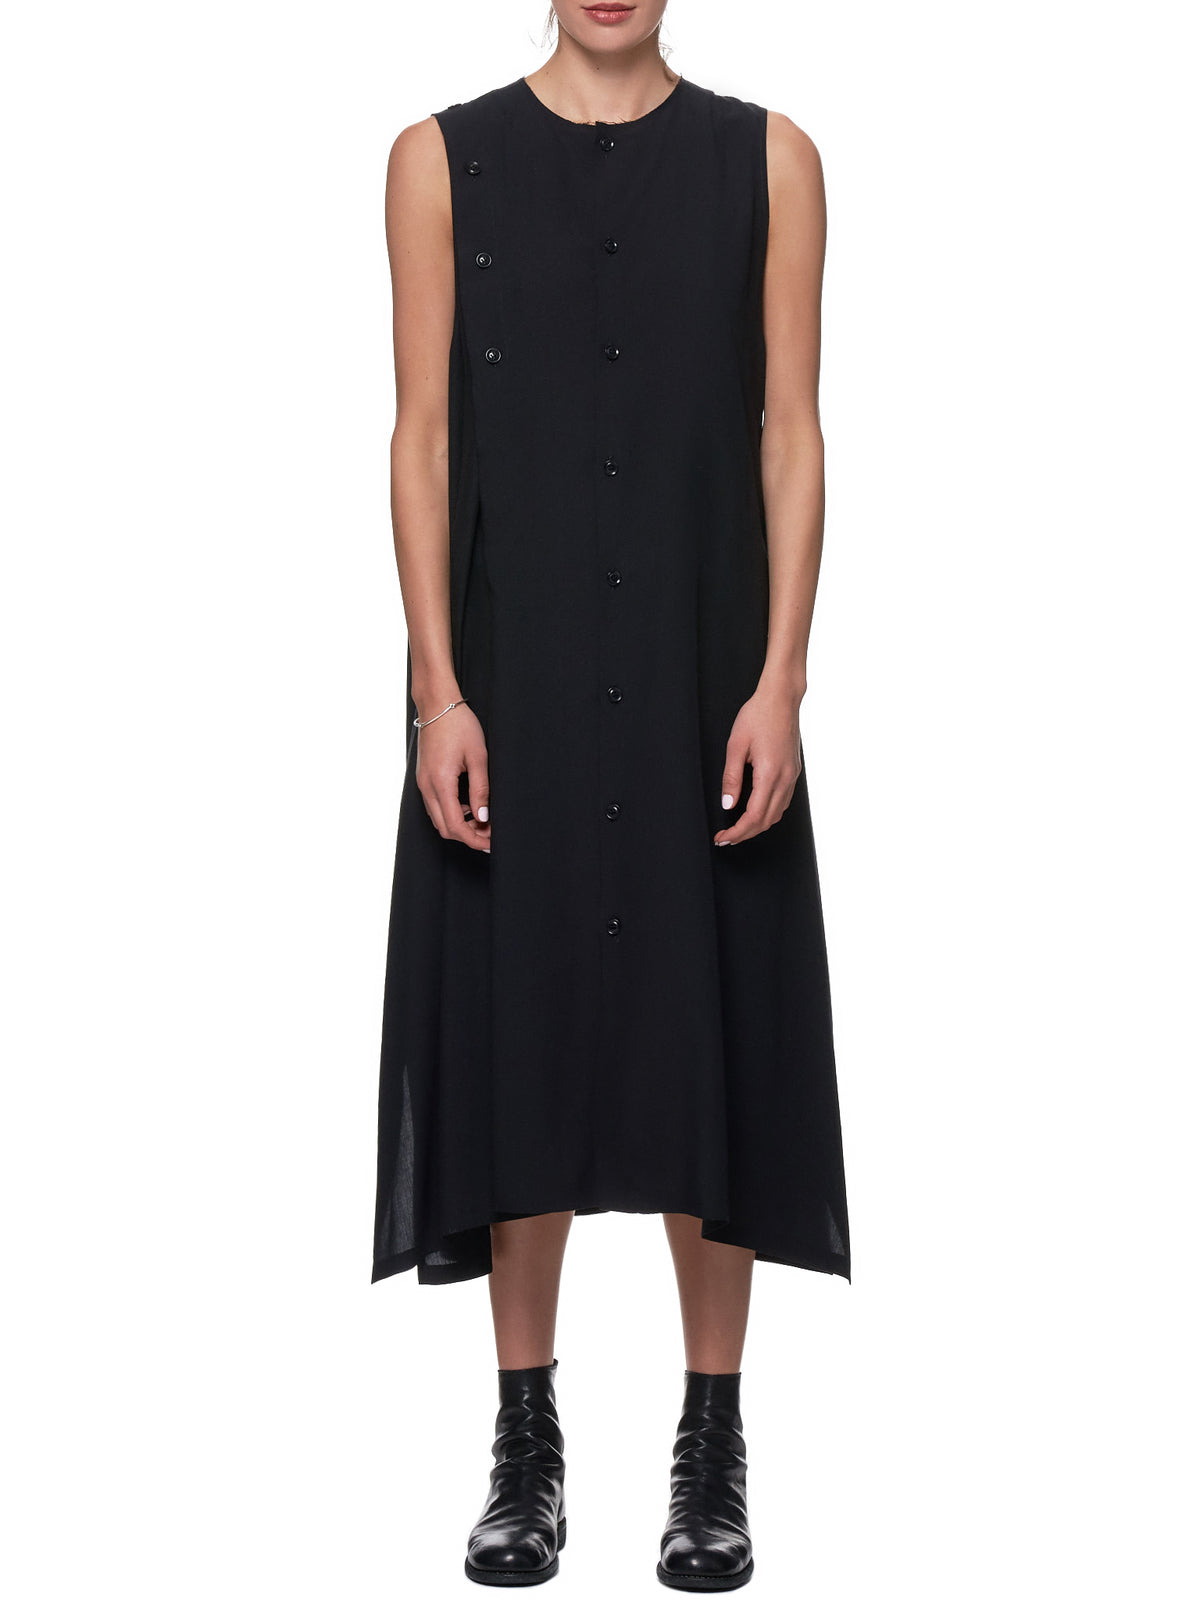 Placket Dress (YH-D10-200-BLACK)